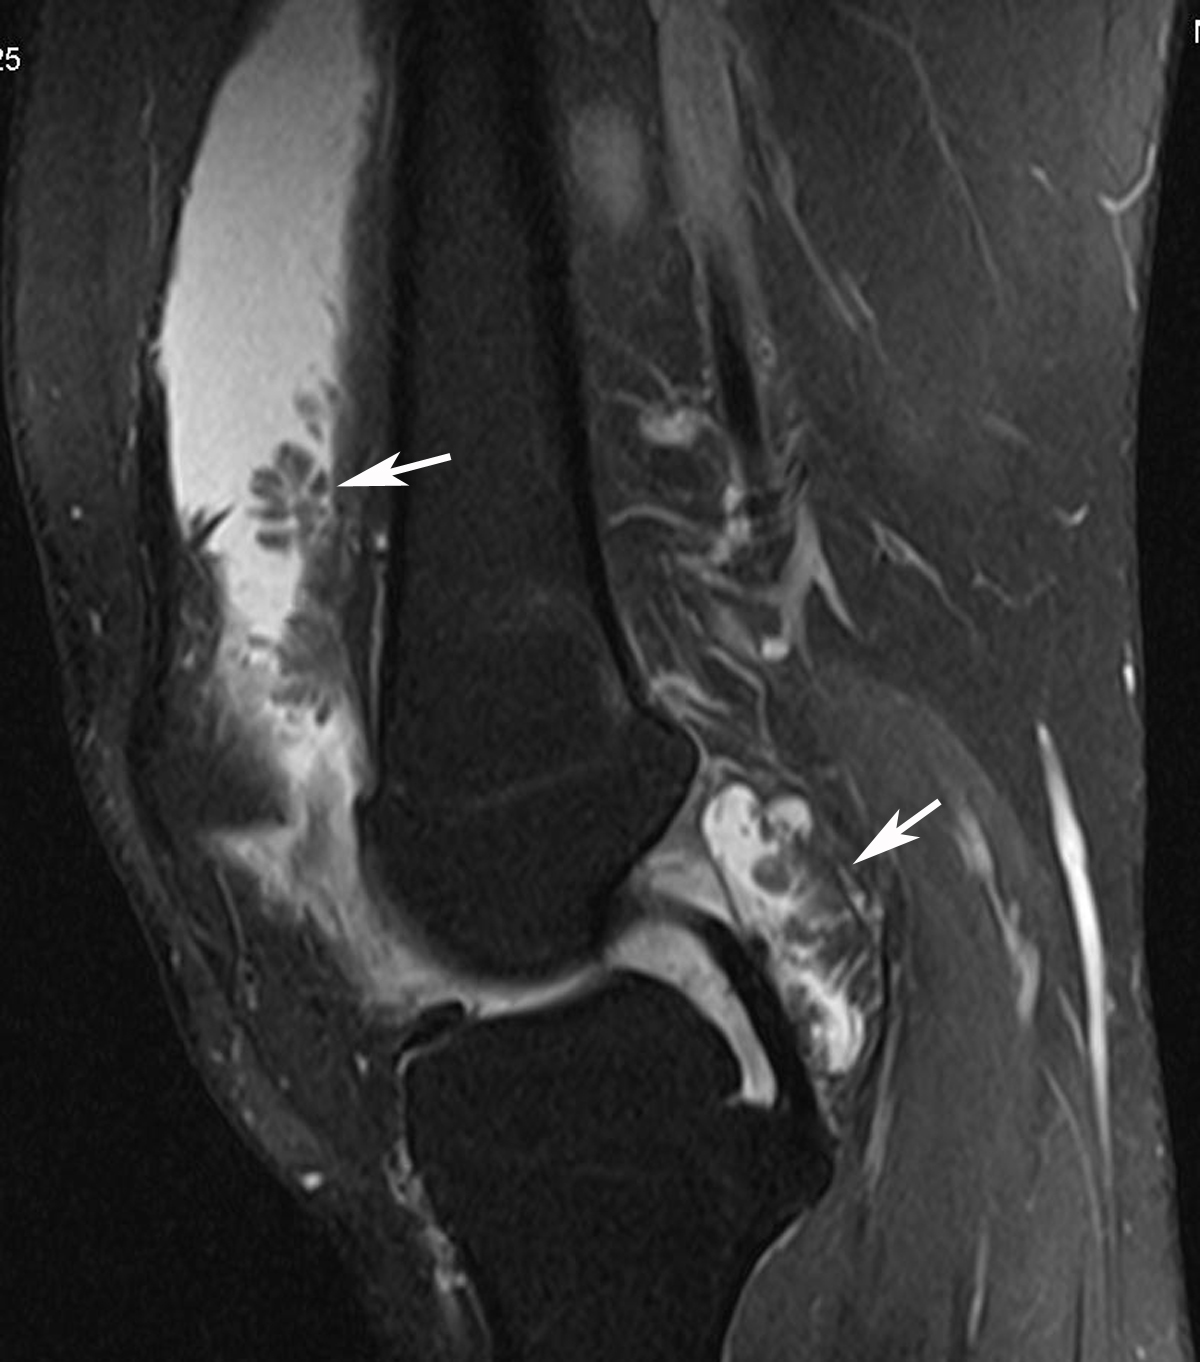 Radiodiagnosis - Imaging is Amazing-Interesting cases: Lipoma ...